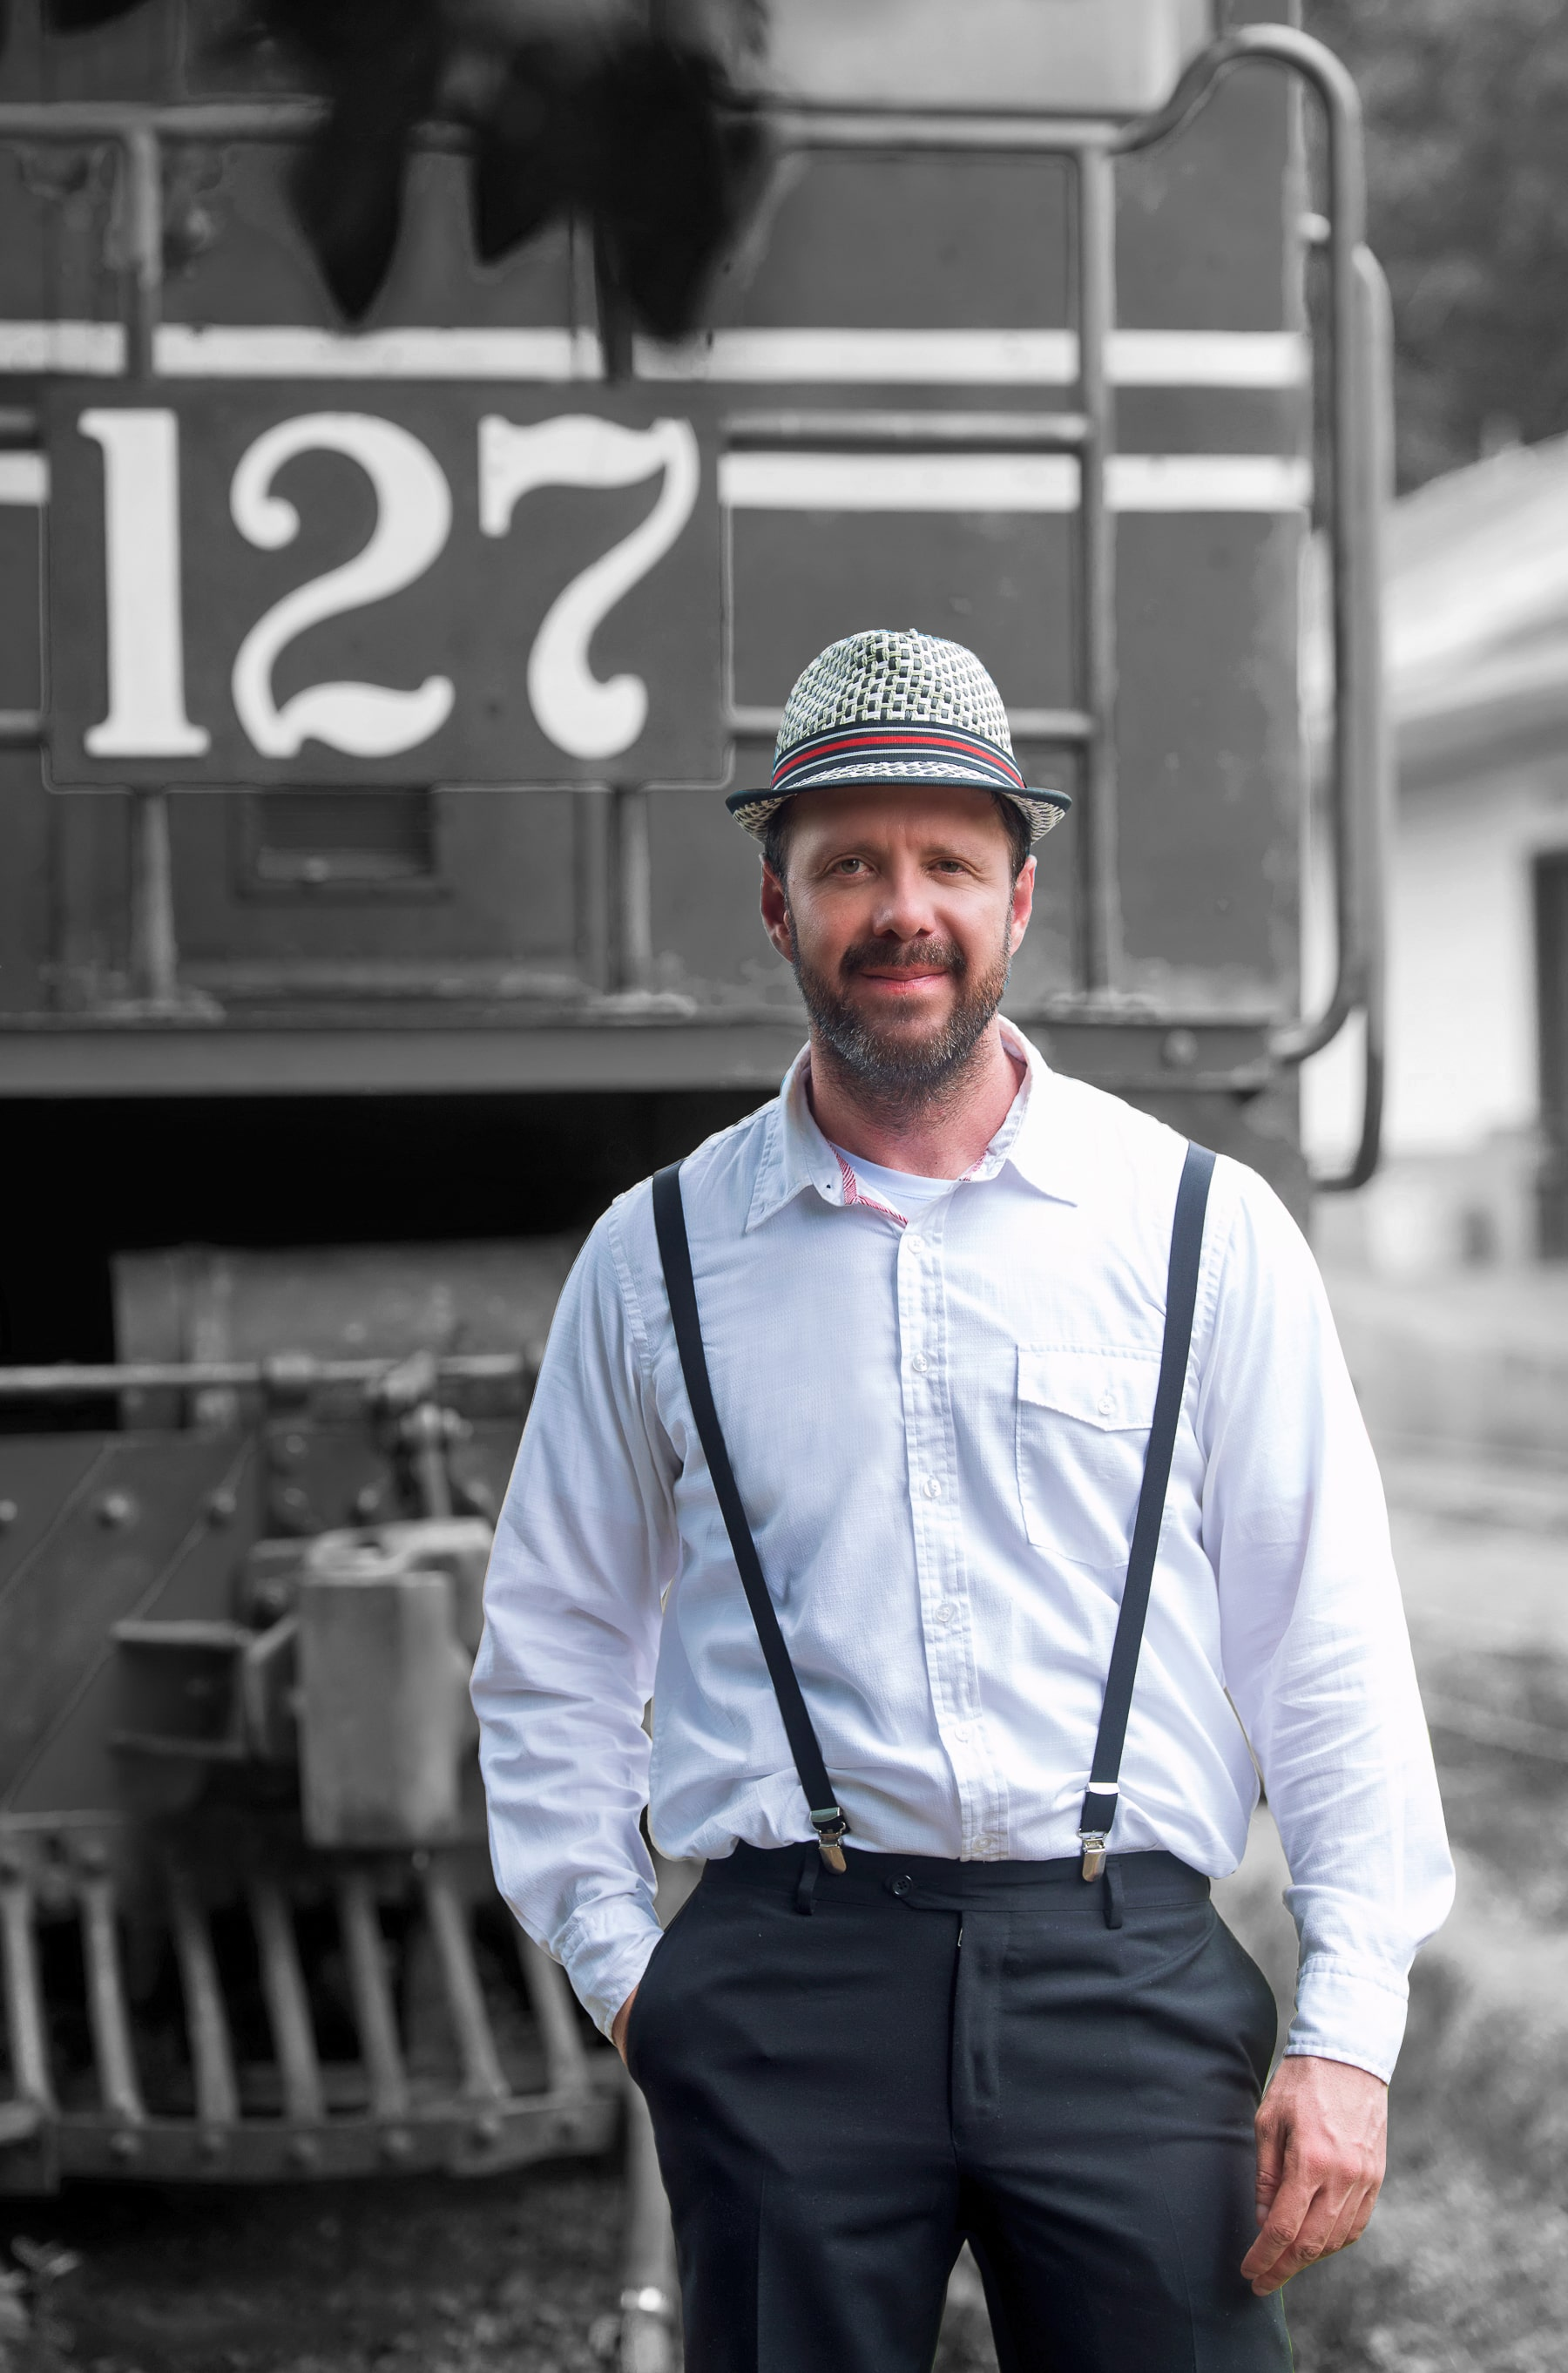 David In Front of a Train